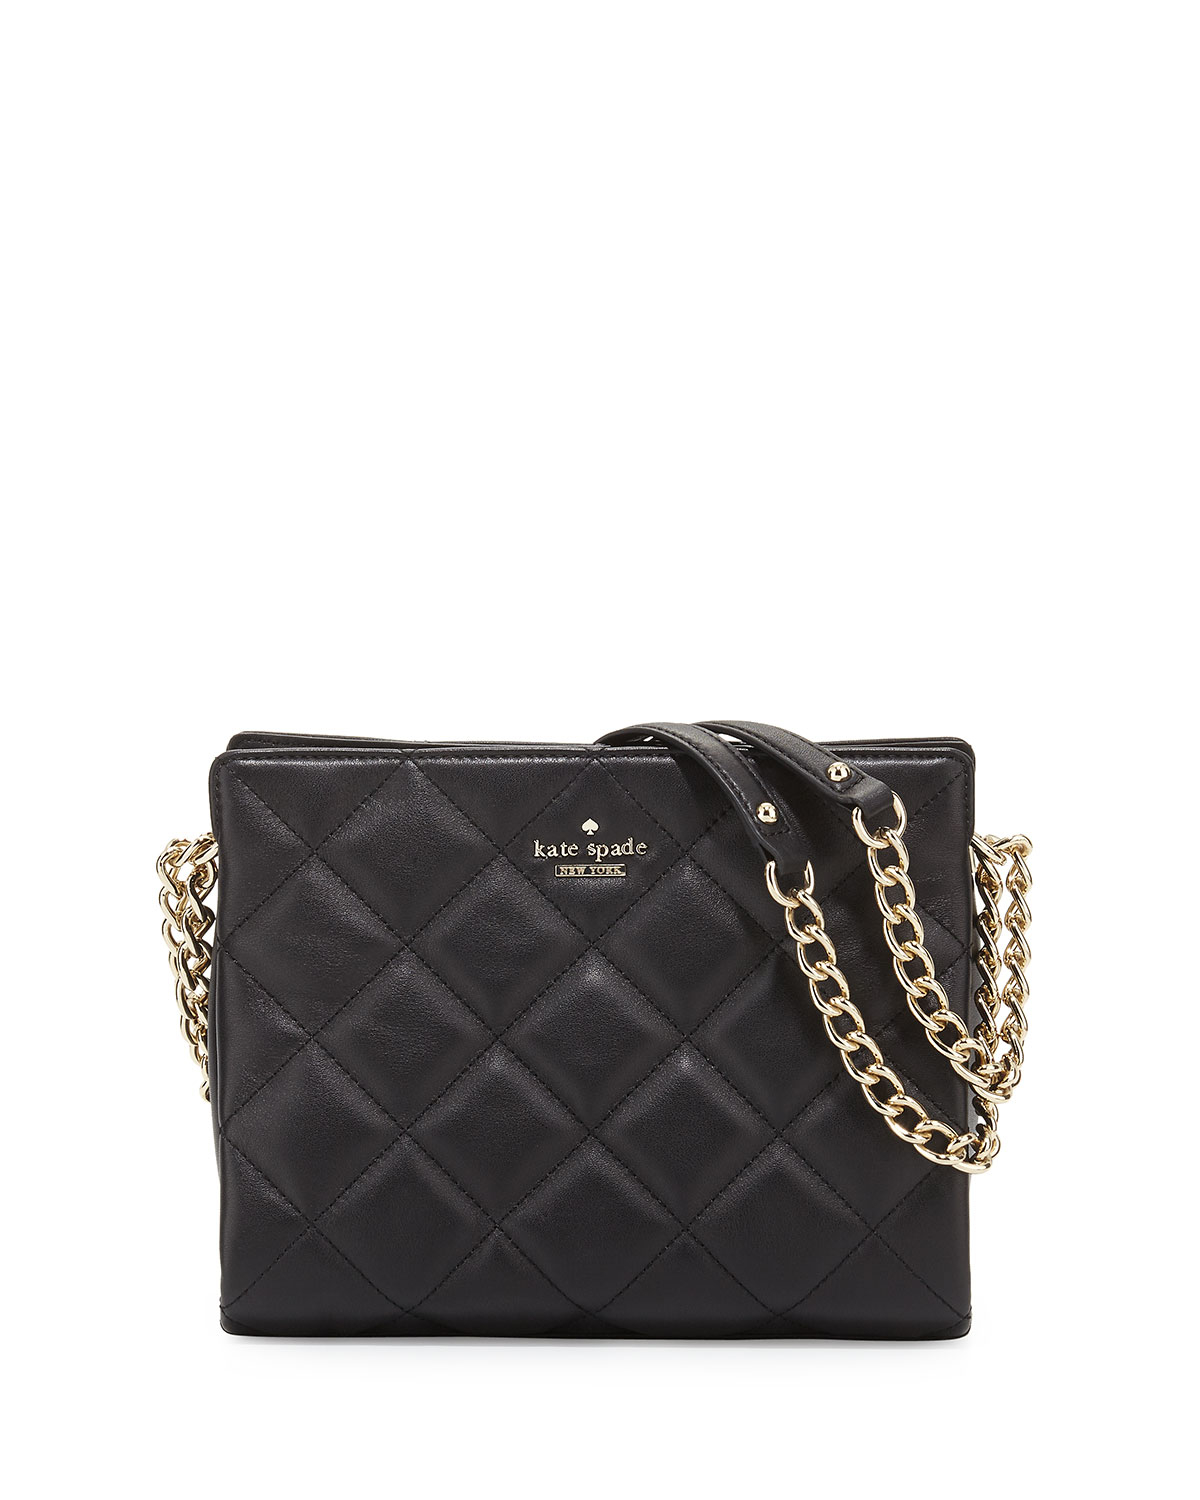 Kate Spade Emerson Place Quilted Leather Handbag In Black